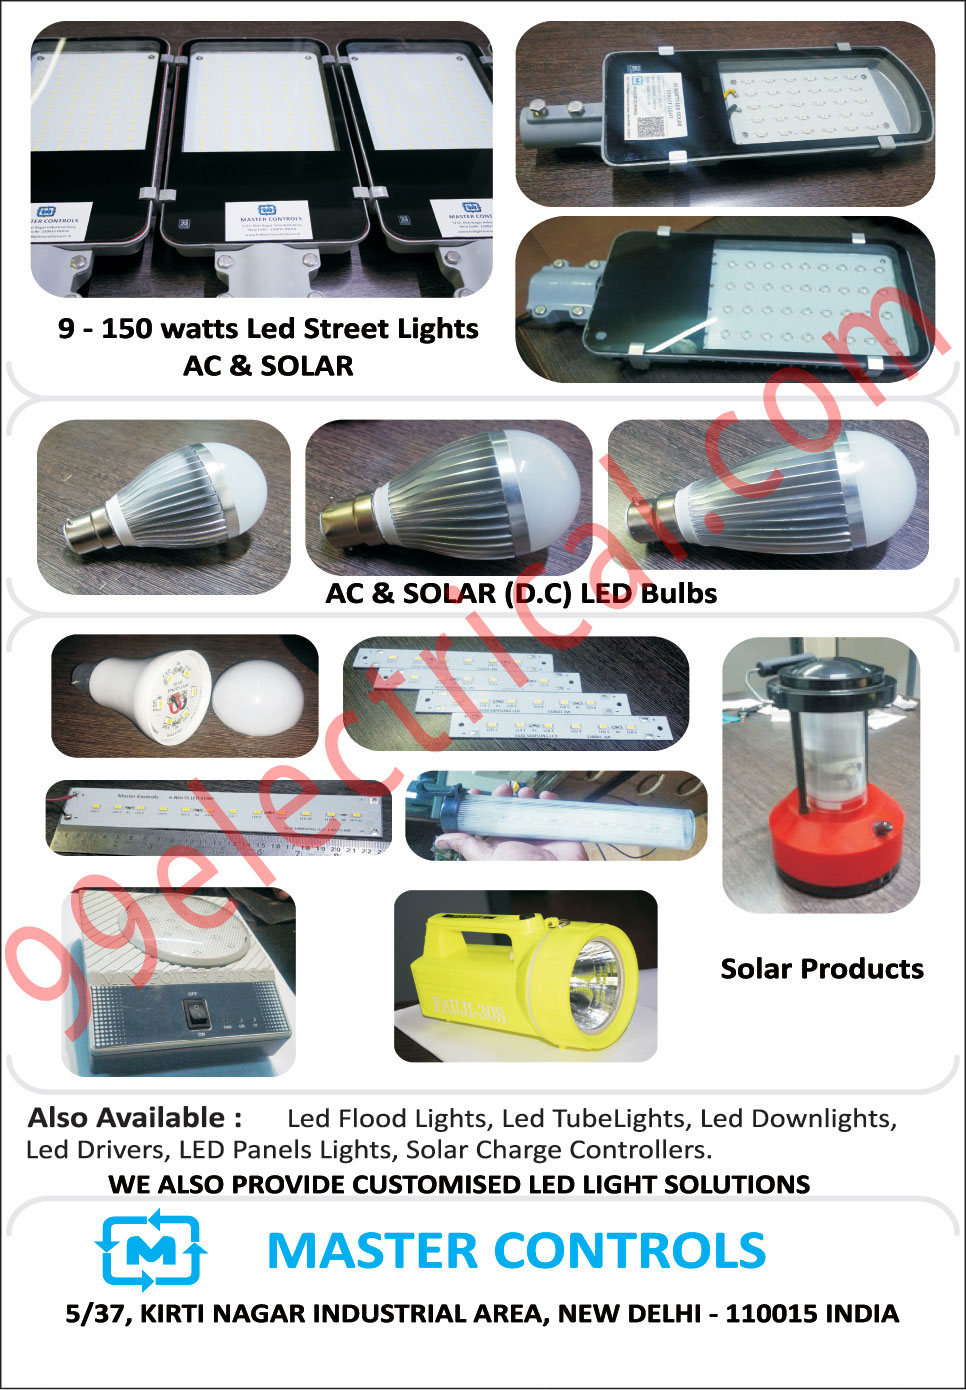 Led Lights, AC Led Bulbs, Led Drivers, Led Flood Lights, Led Down lights, Led Panel Lights, Led Tube Lights, Solar Products, Solar Power, Solar Charge Controllers, Led Street Light, Led Solar Street Lights, Solar Led Bulbs, AC  led bulb, Solar Led Bulbs, Customized Led Light Solutions